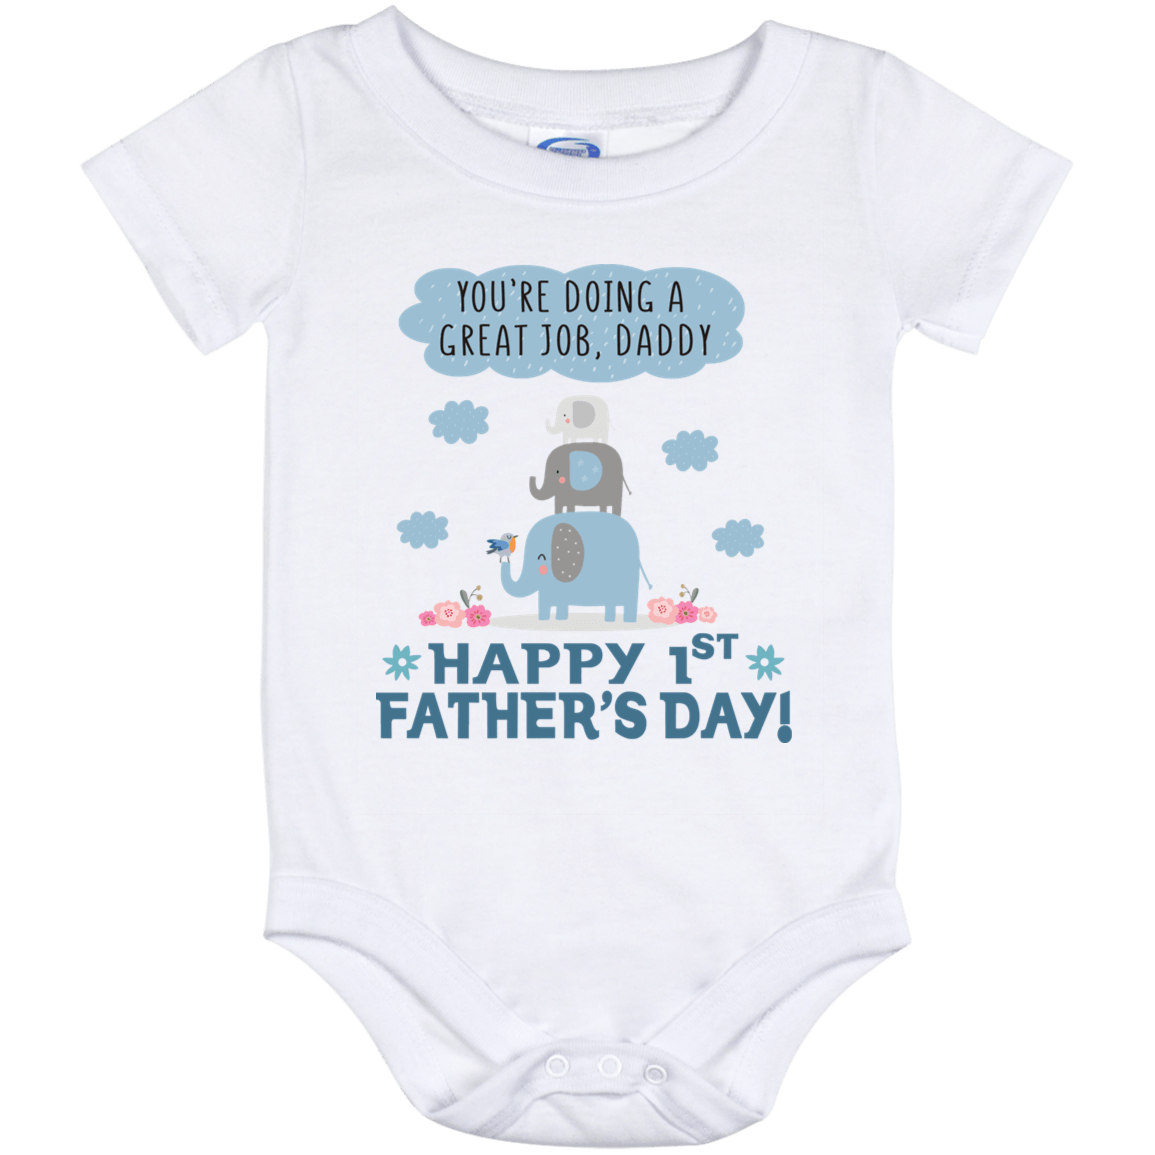 dc8c8696 You're Doing A Great Job Daddy Happy 1st Father's Day Baby Onesie - First  Fathers Day Onesie - Baby Boy Onesie - CubeBik ™